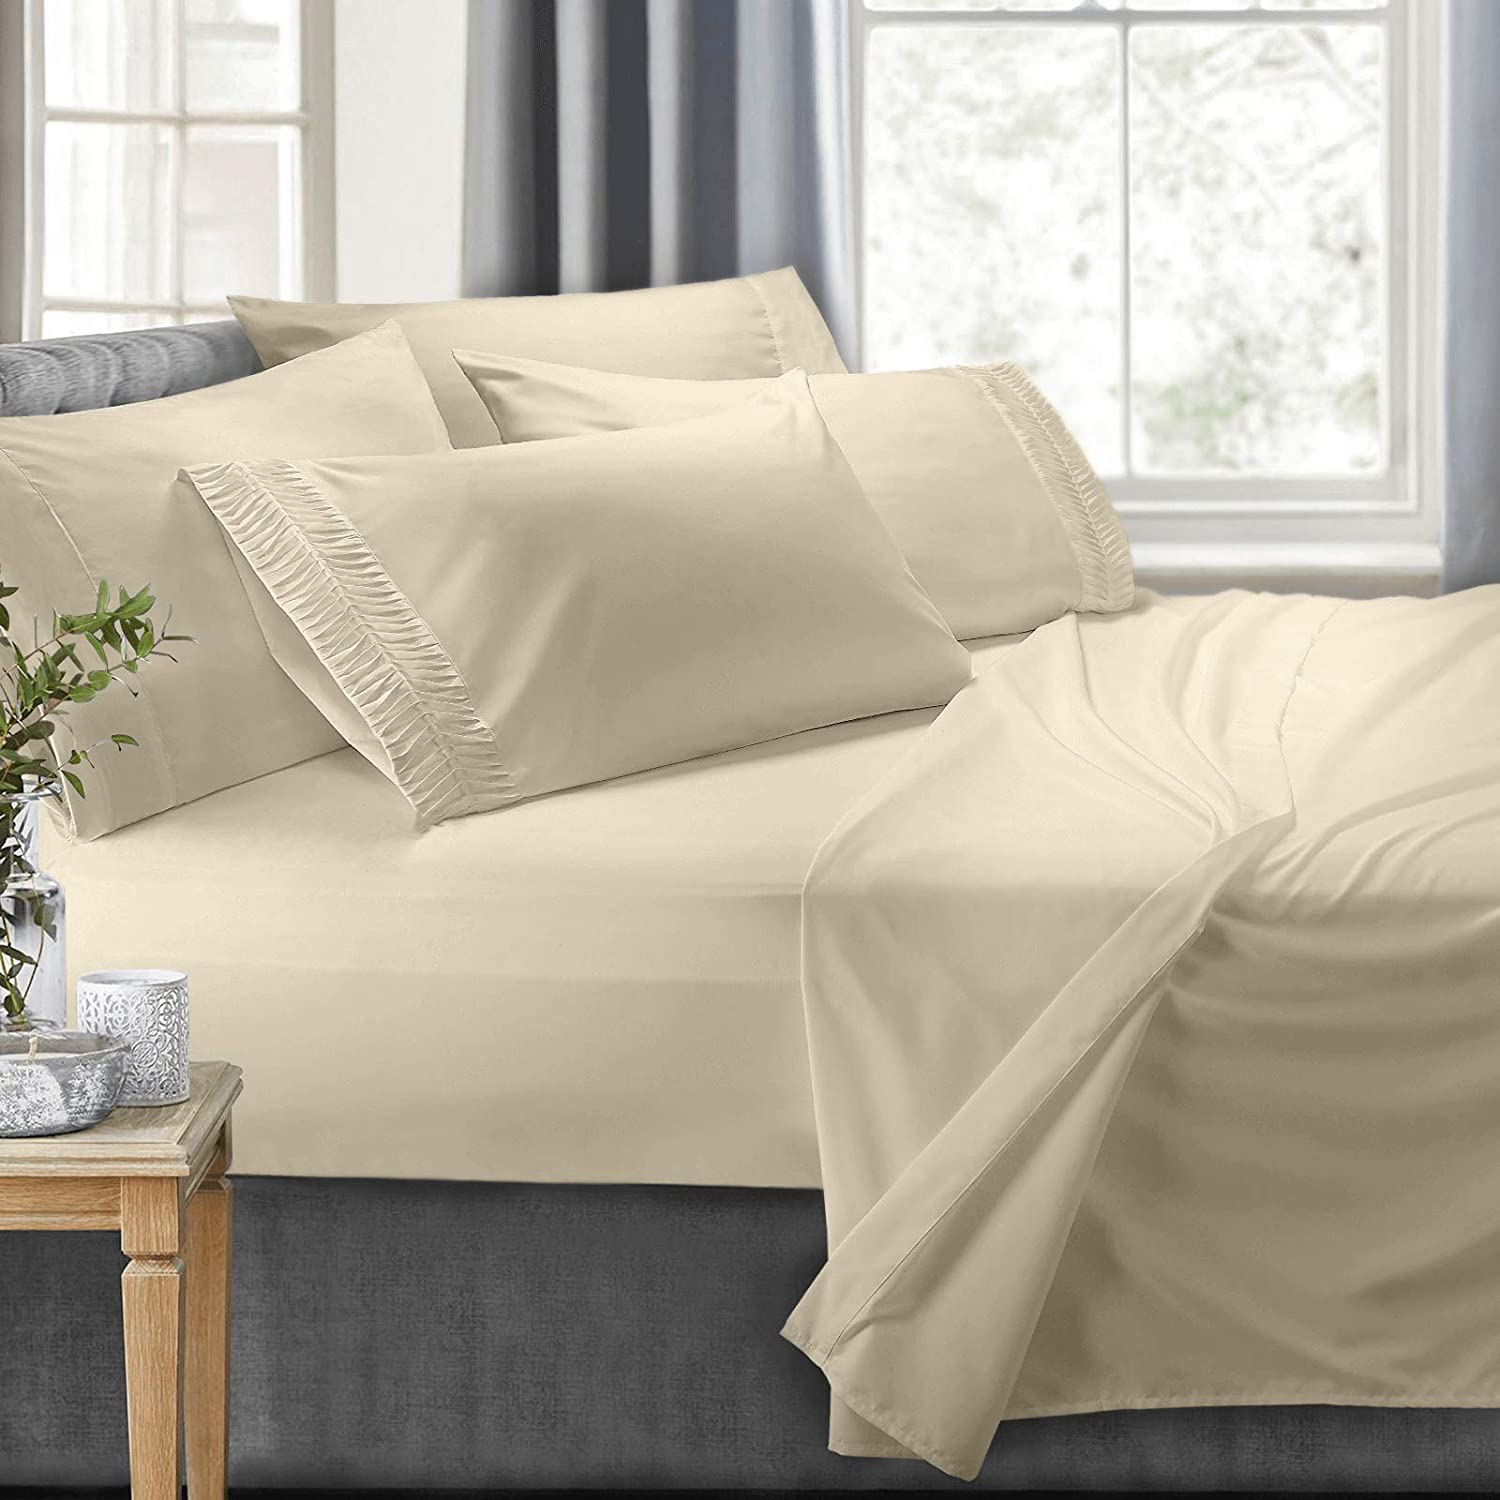 Clara Clark 6-Piece 100% Soft Brushed Microfiber Bedding Set Luxury Pleated Pillowcases, Cool & Breathable, 6 PC Sheets, Queen, Cream